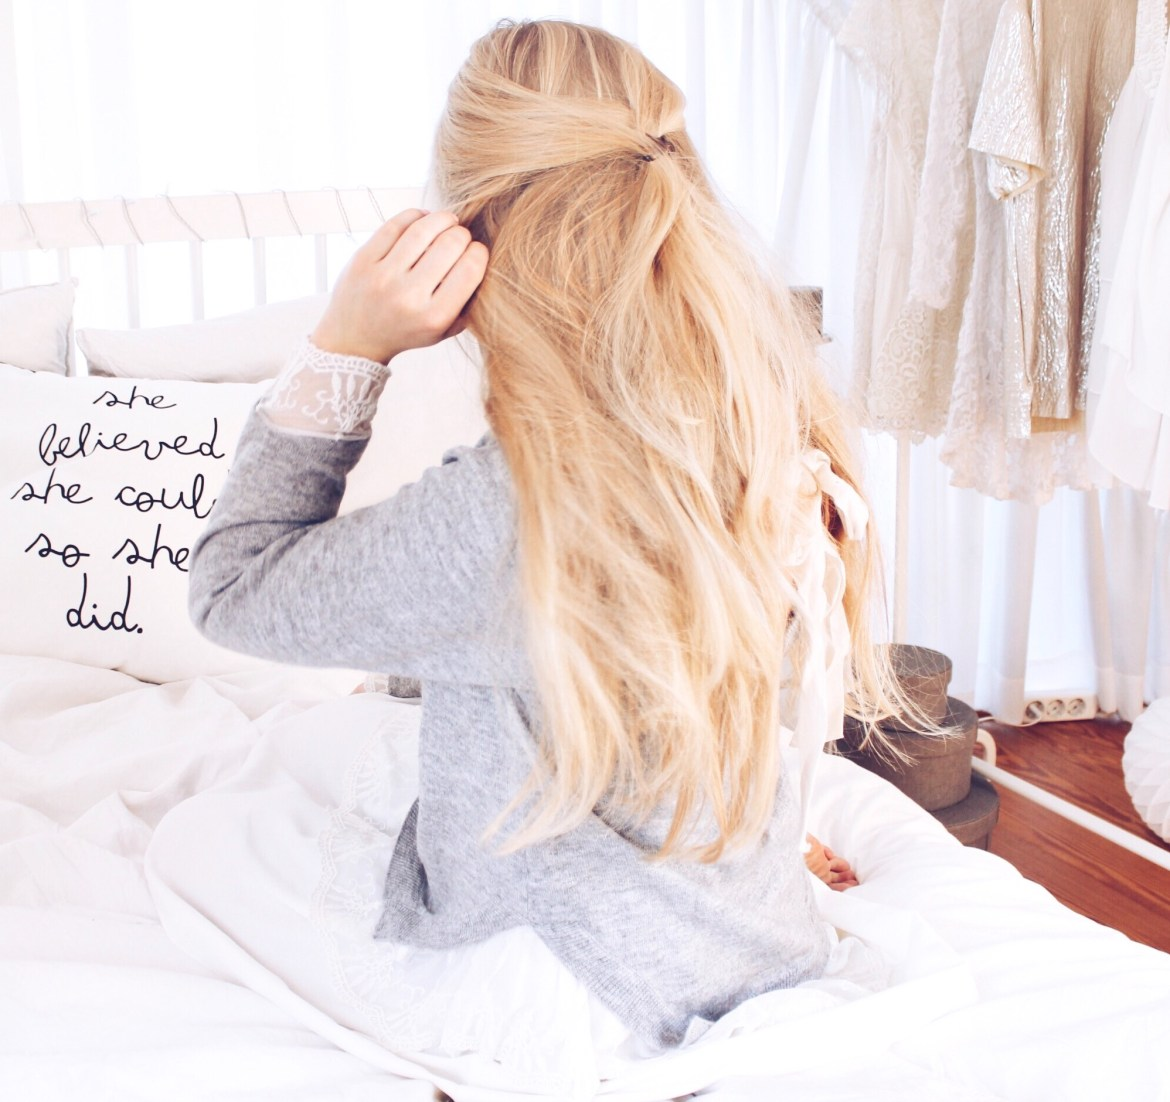 hair_julispiration_4